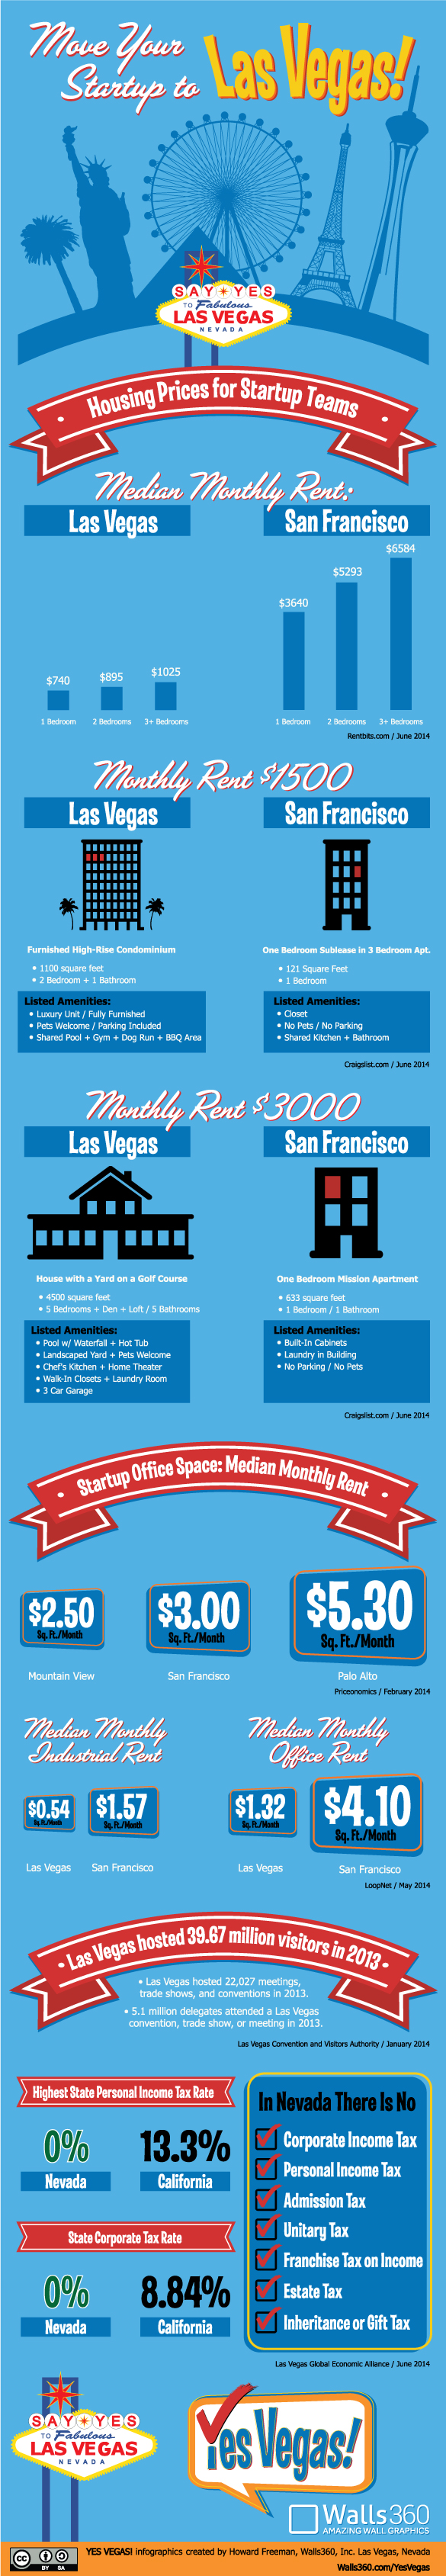 Thinking About Moving Your Startup to Las Vegas?  YES VEGAS! Infographic #2 from Walls360